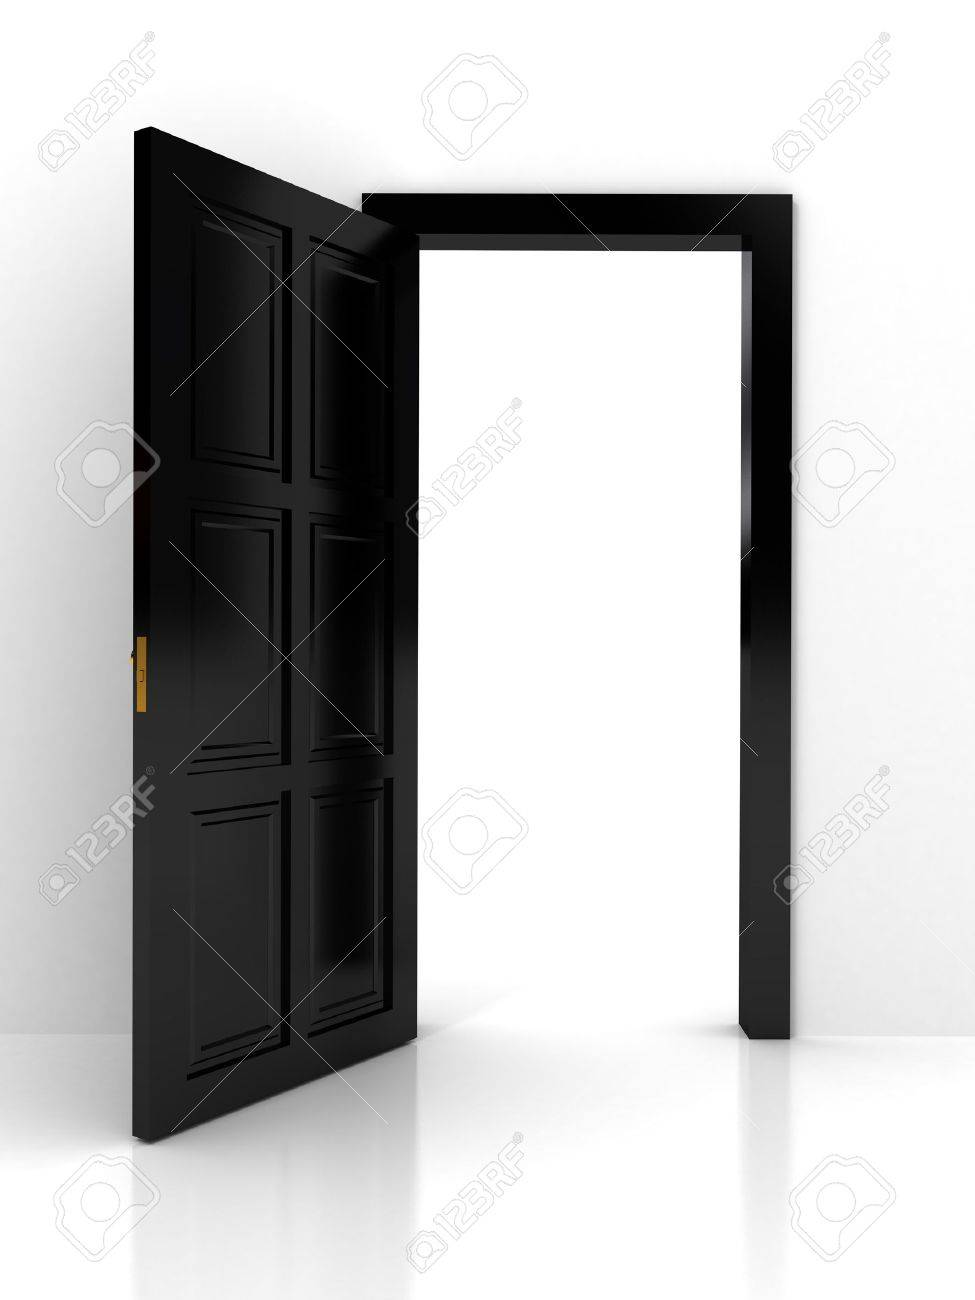 Black Door Frame Black Door Over White Background Stock Photo Picture And Royalty